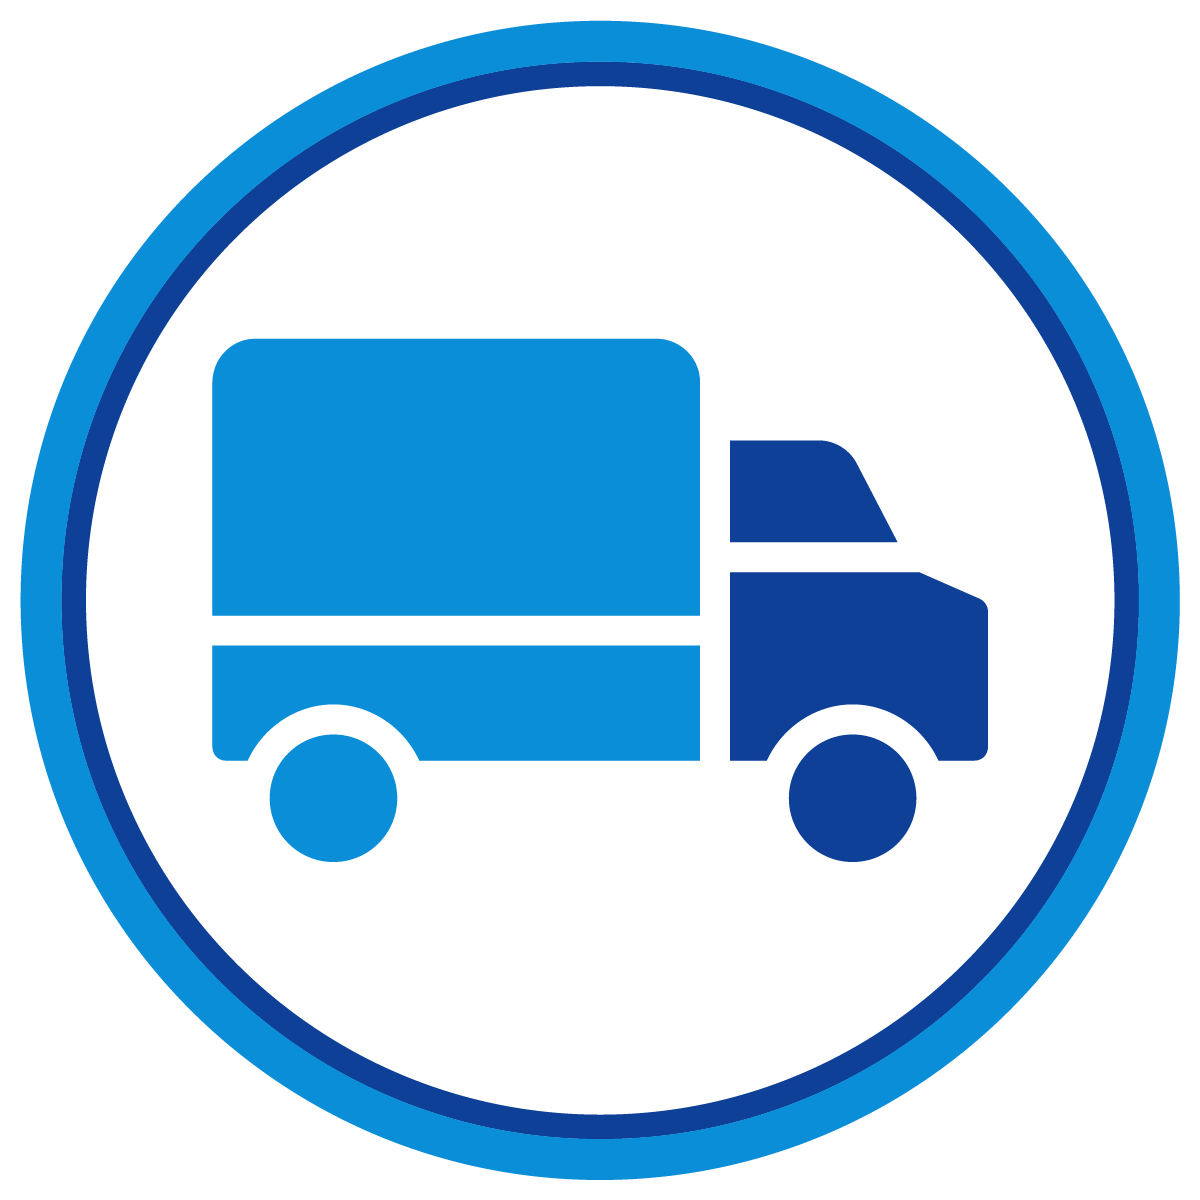 iconDELIVERY